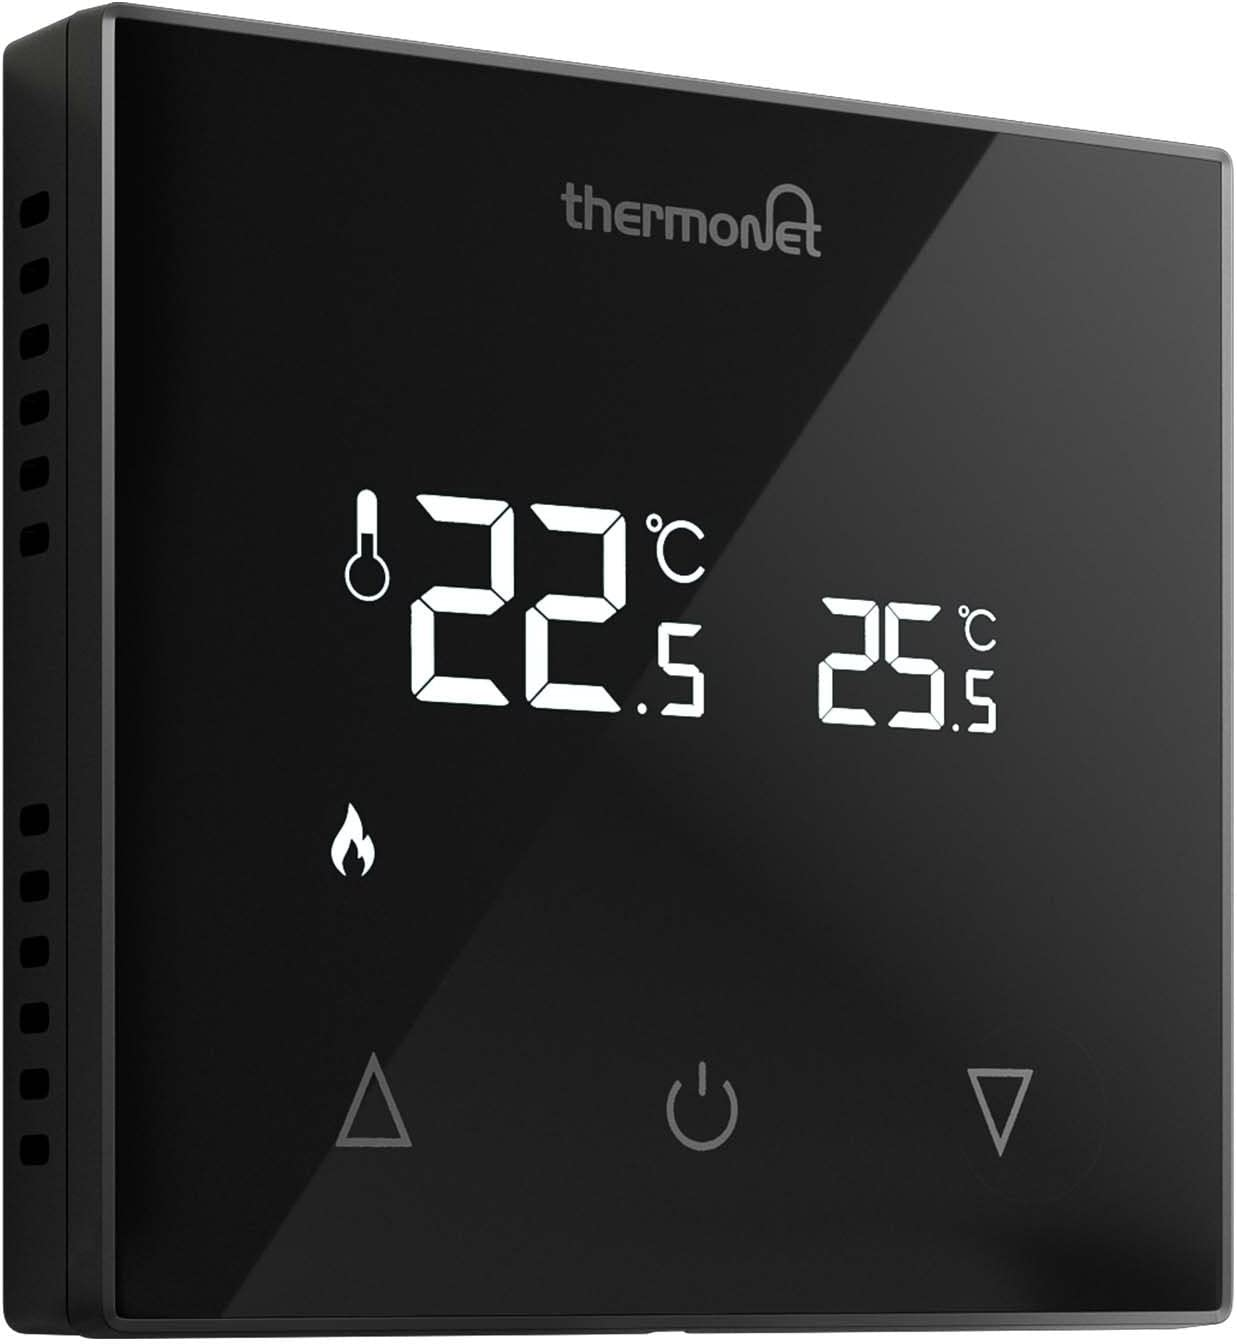 Thermotouch 5216 Manual Underfloor Heating Thermostat Glass Led Display Black Amazon Co Uk Diy Tools